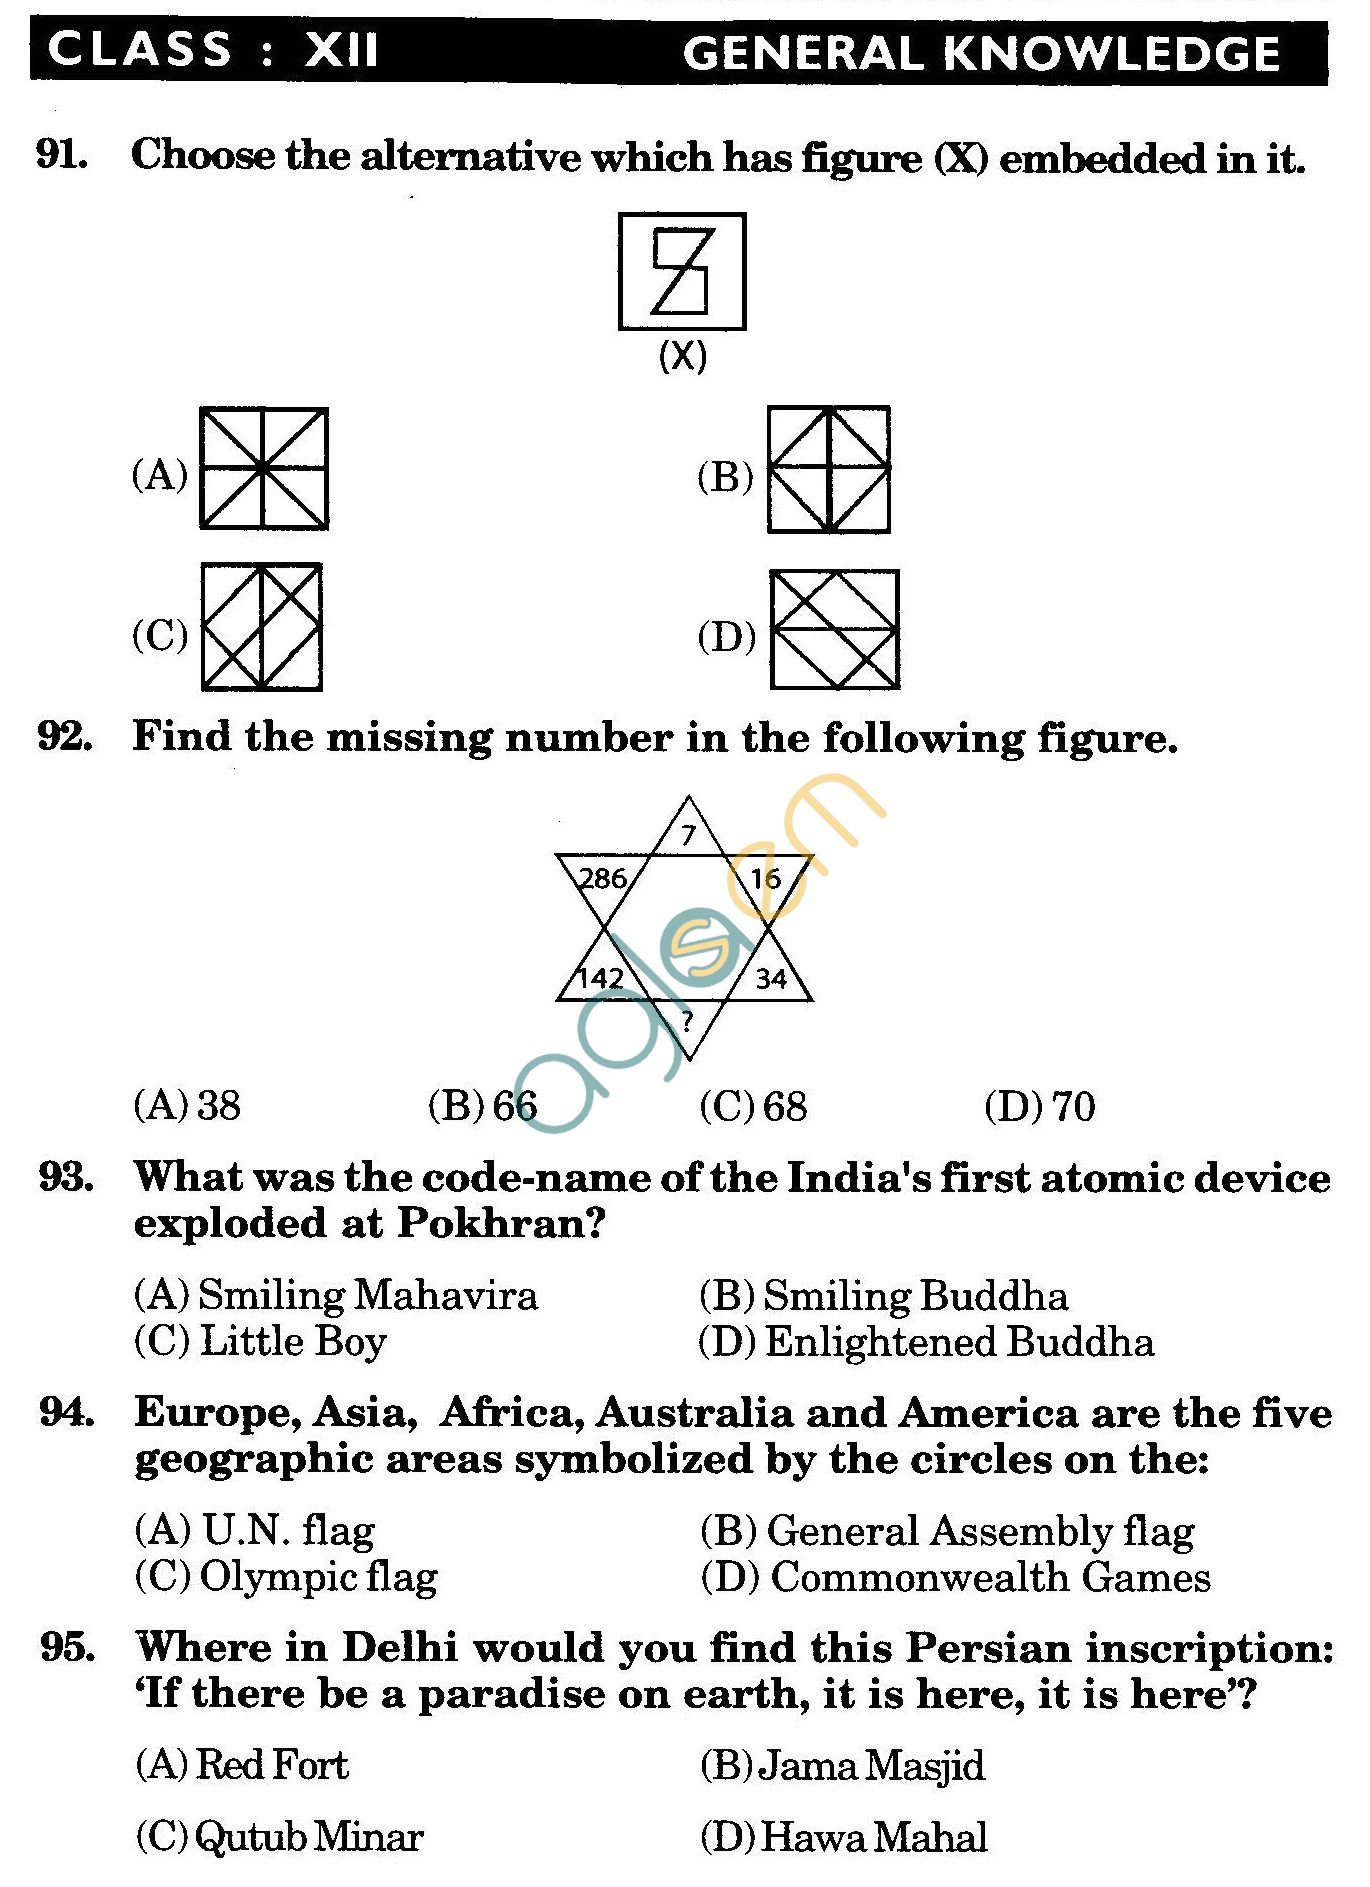 NSTSE 2010 Class XII PCB Question Paper with Answers - General Knowledge